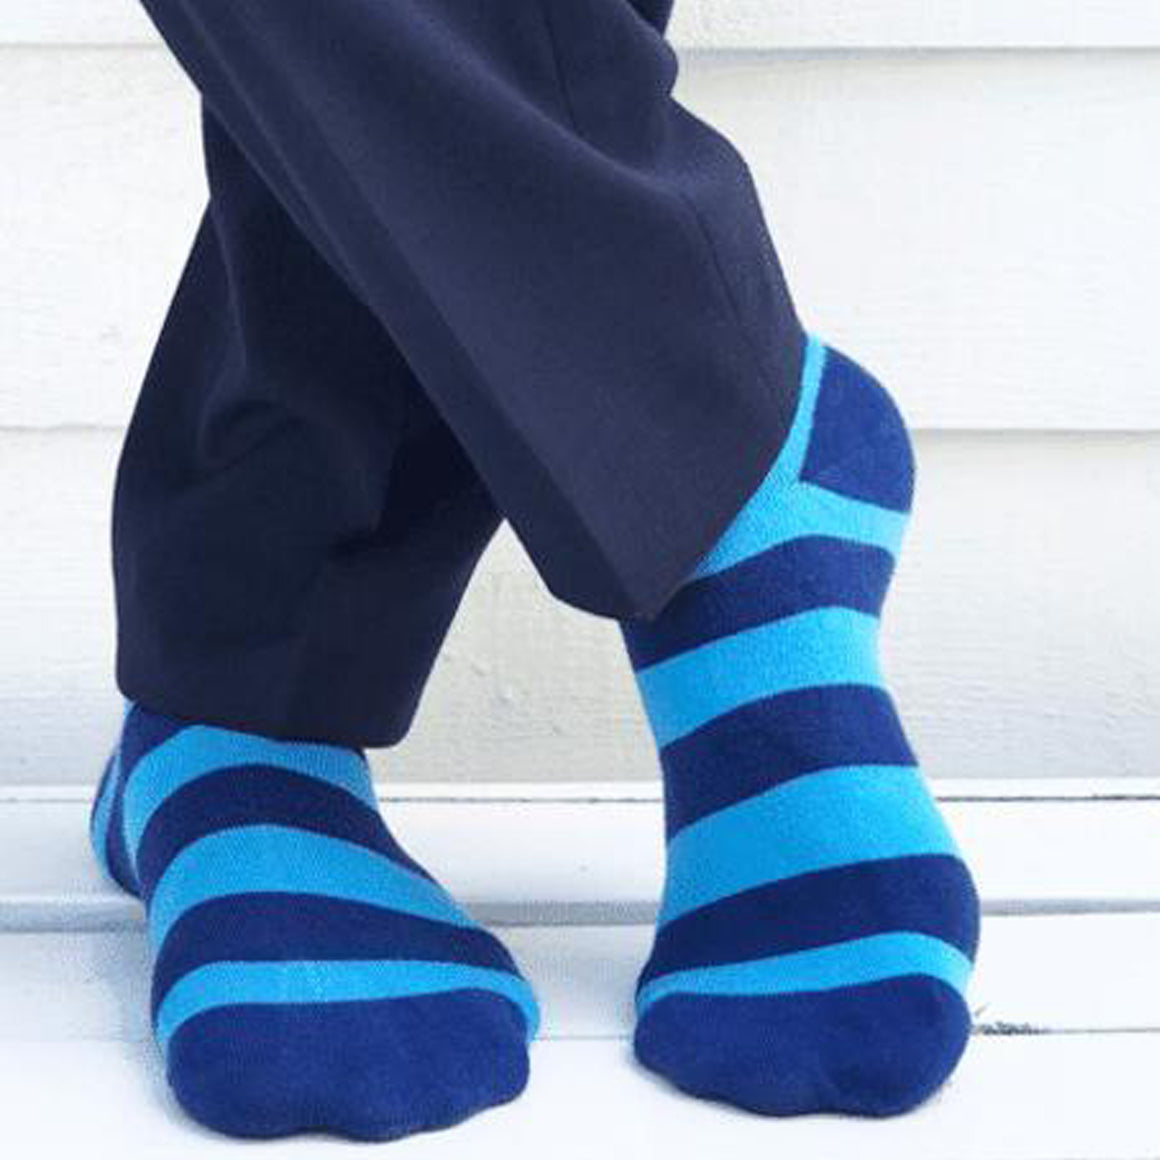 Striped Bamboo Socks for Men in Sky Blue